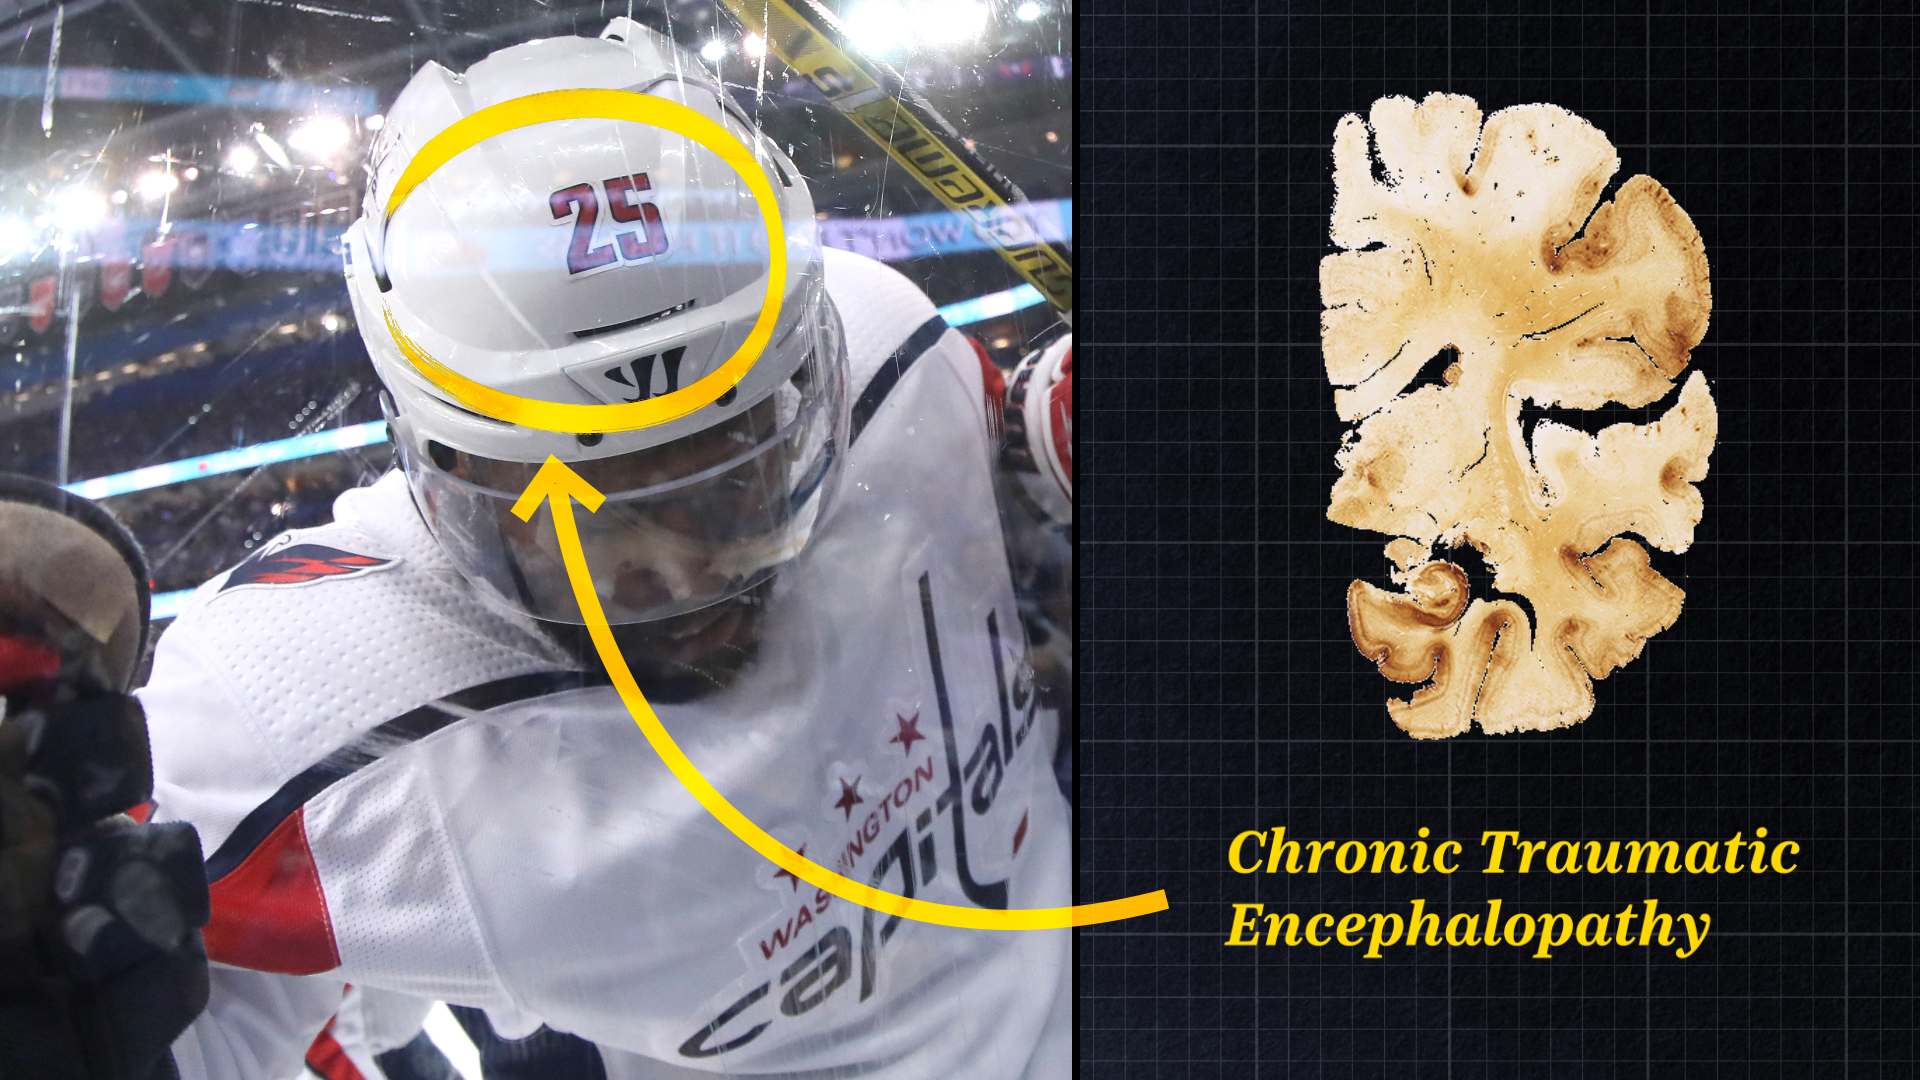 What is CTE? The degenerative brain disease that's been found in NFL players, explained